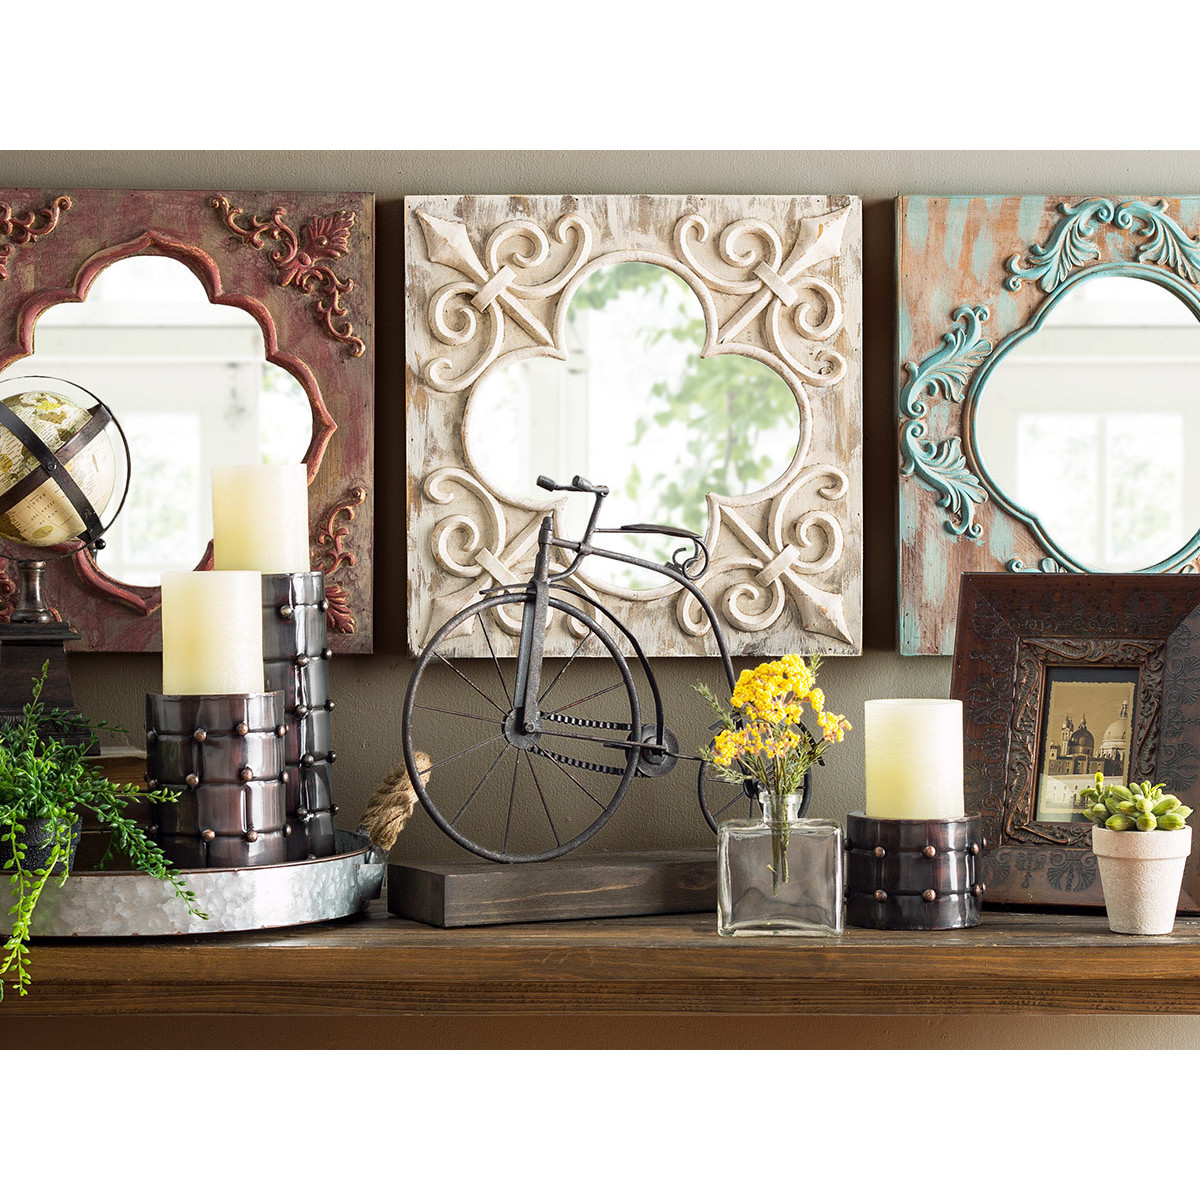 27 Best Rustic Wall Decor Ideas and Designs for 2016 on Wall Decoration  id=90980